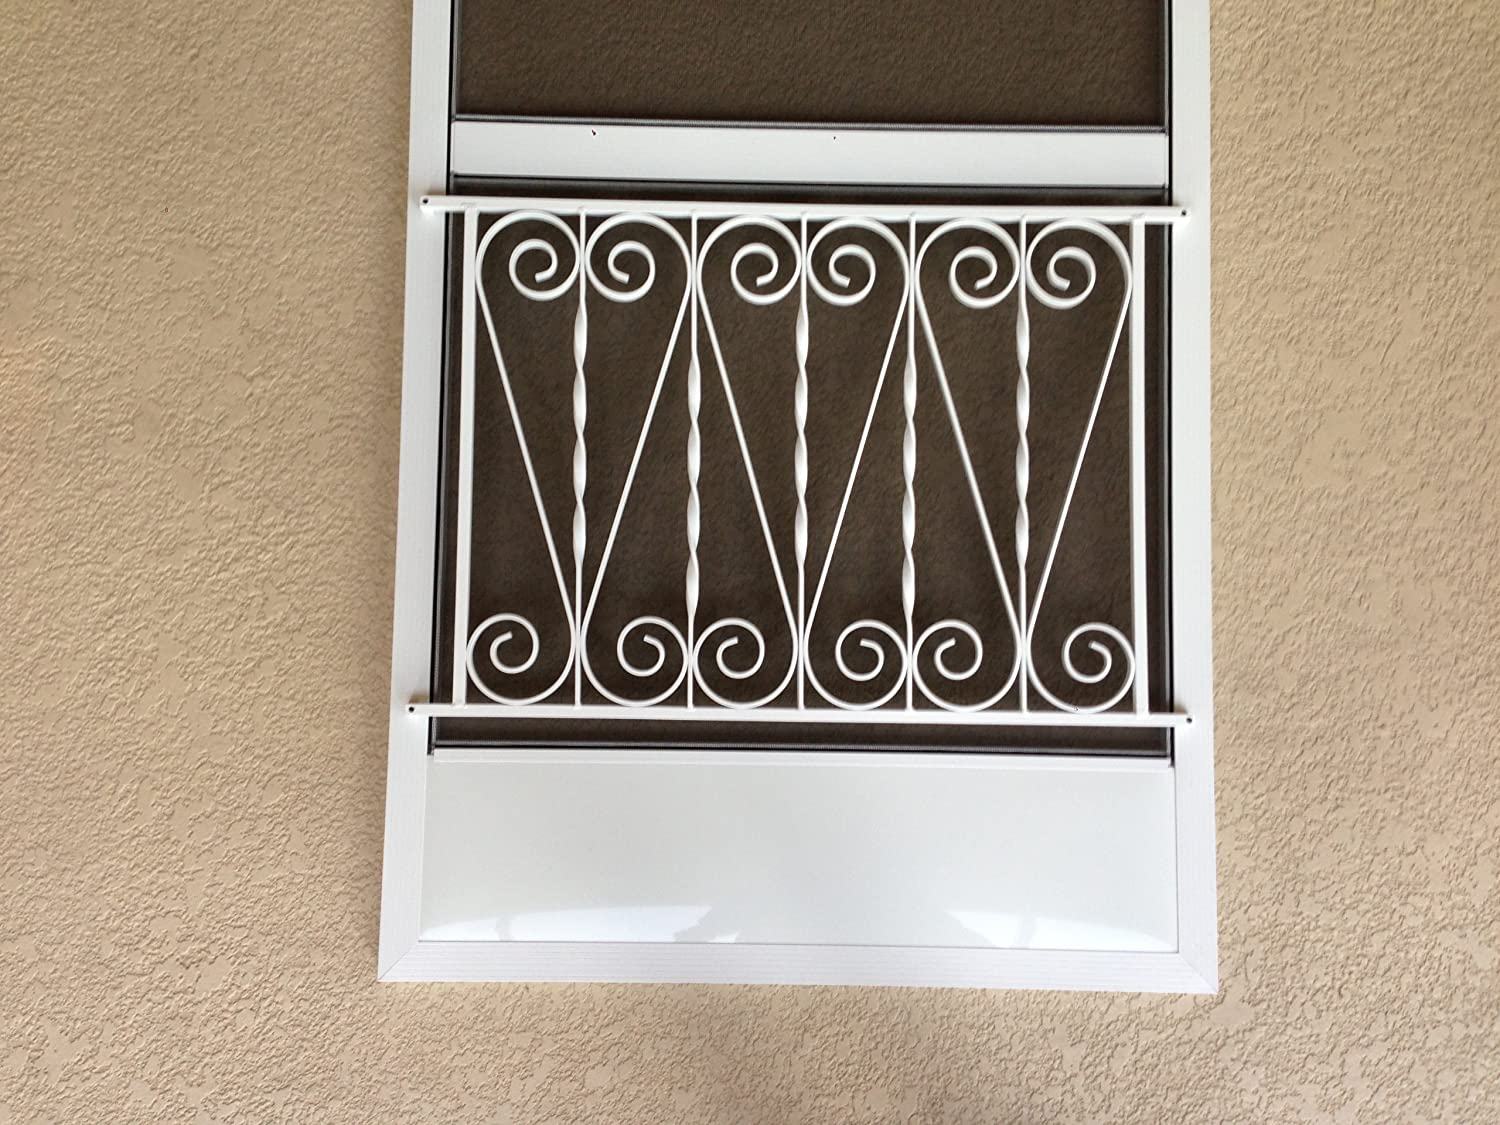 Vintage inspired screen door grille screen door pet guard white vintage inspired screen door grille screen door pet guard white aluminum hearts design 34 x 22 12 protective decorative fireplace screens vtopaller Image collections